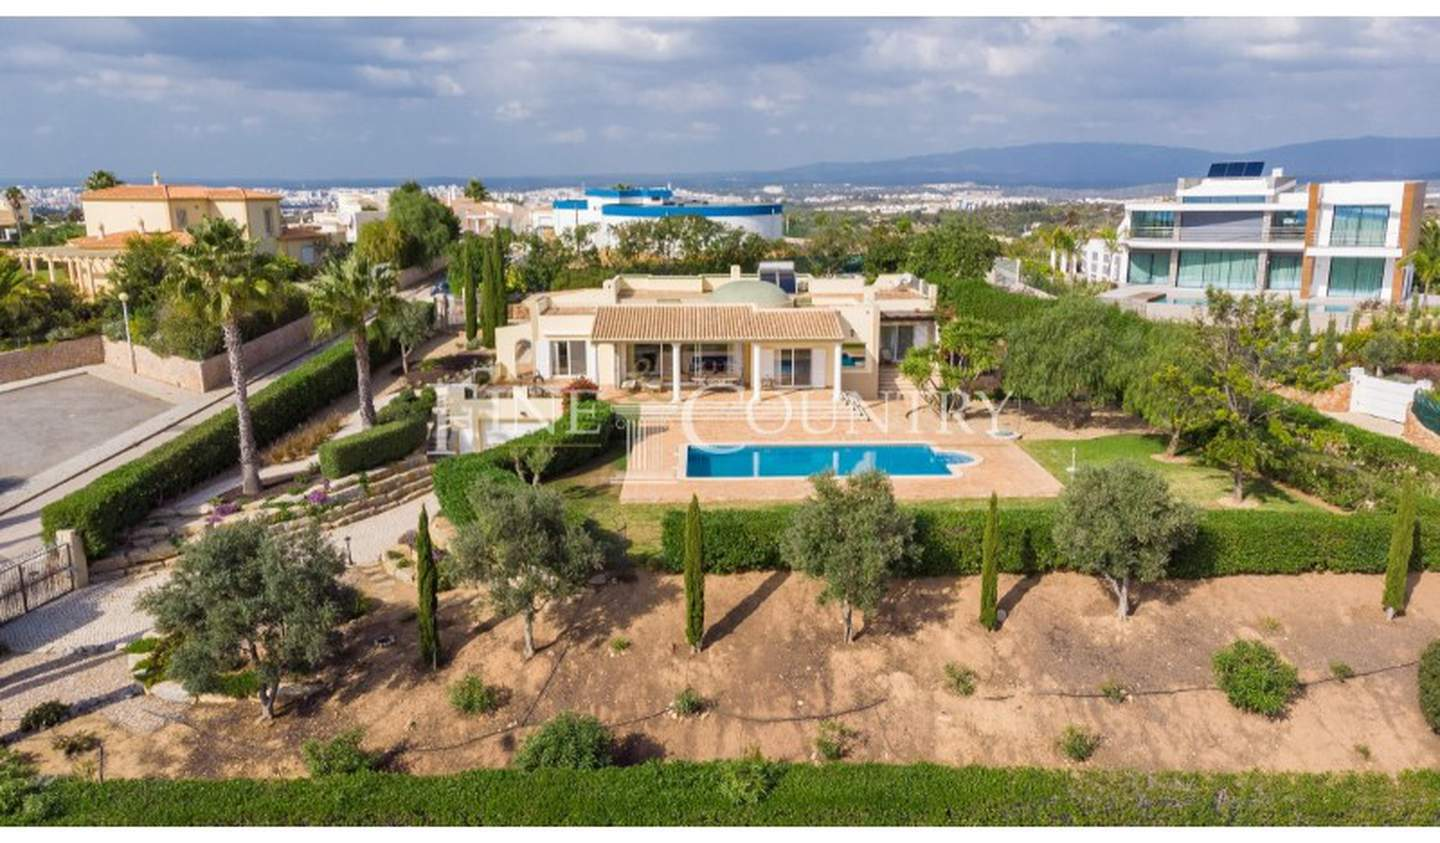 Villa with garden and terrace Faro District